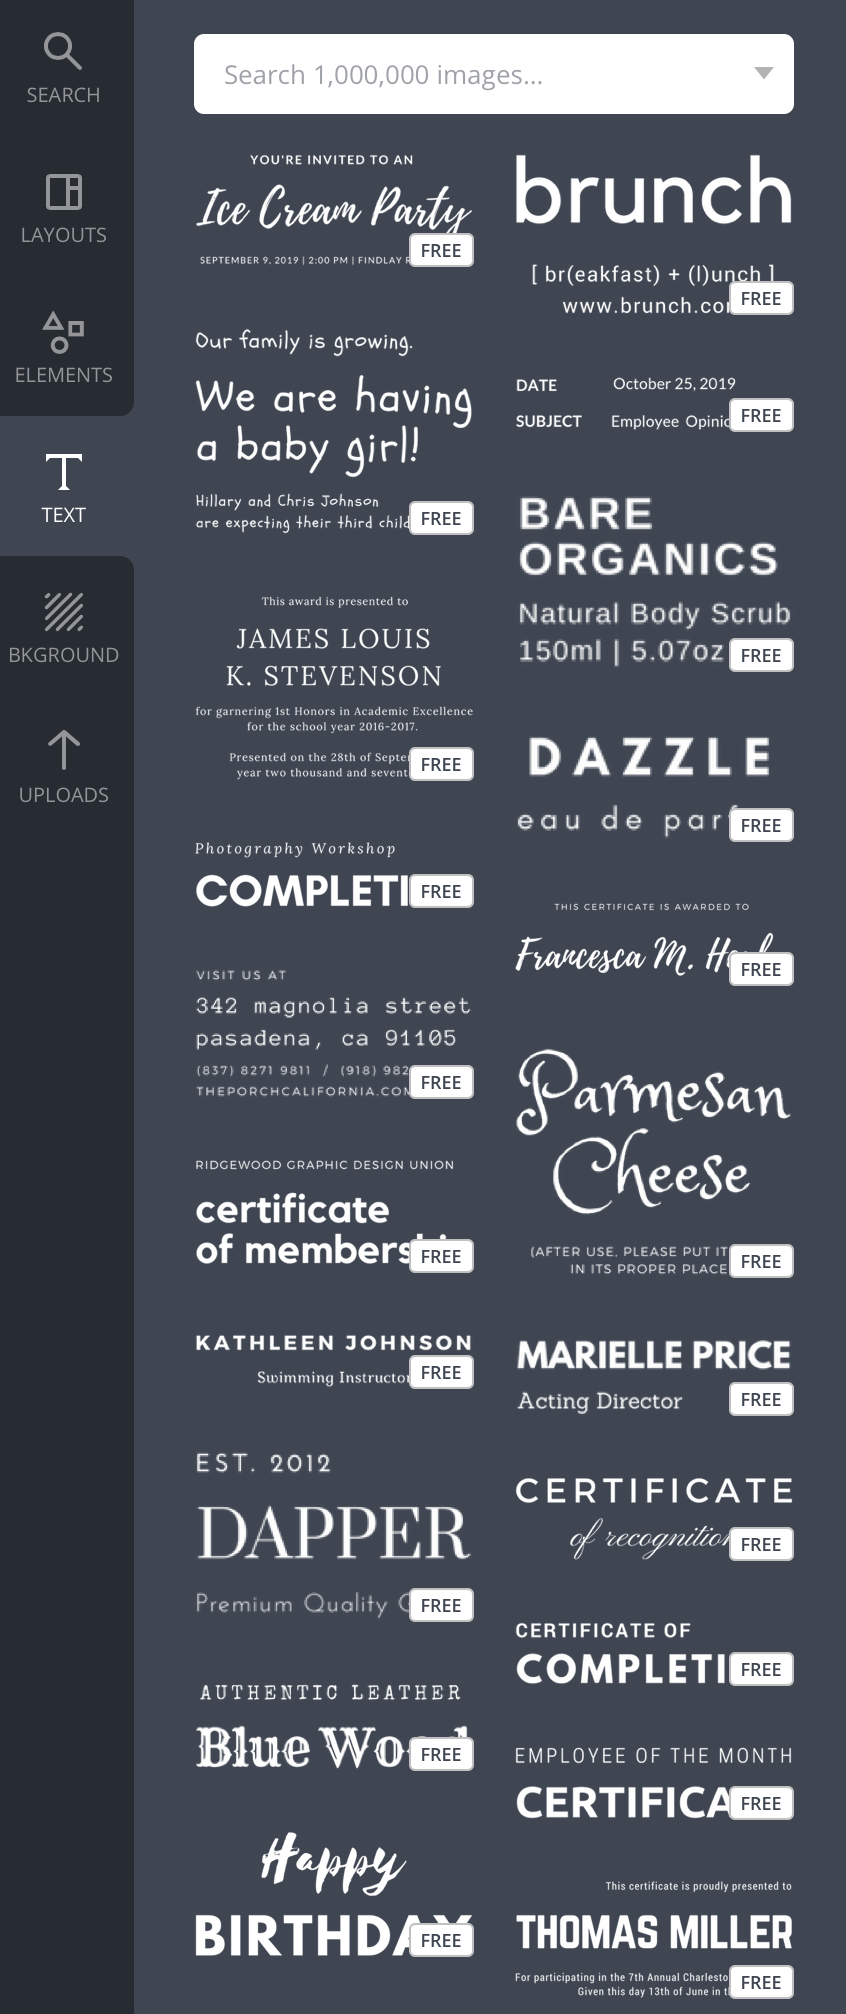 text options on canva